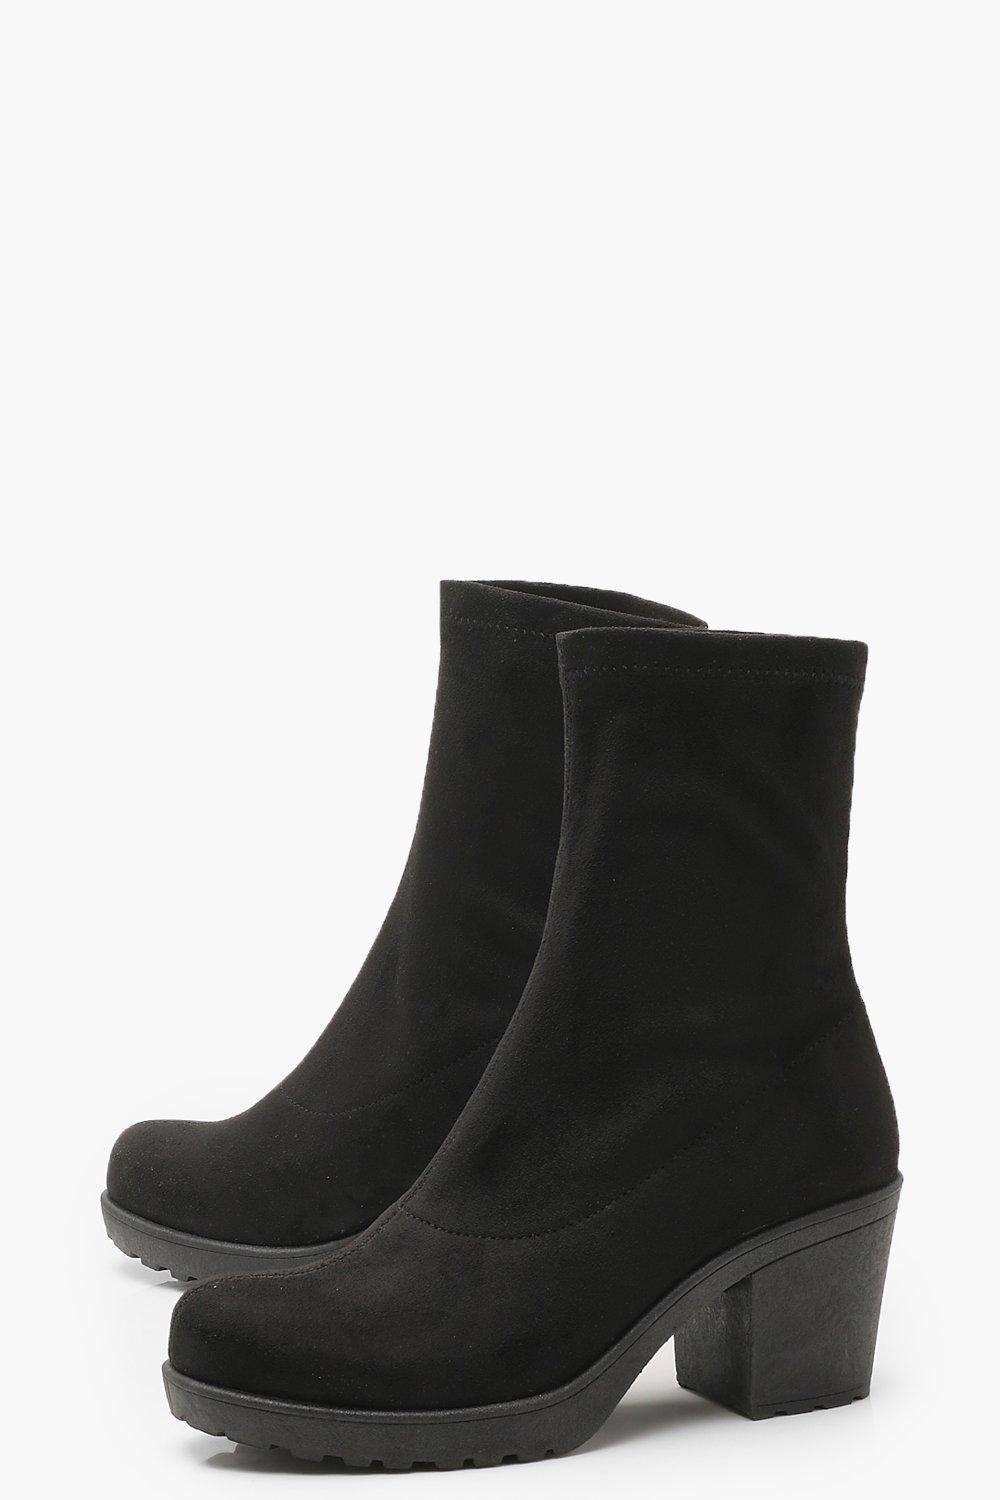 57a6305eb2d1 Boohoo - Black Wide Fit Cleated Pull On Sock Boots - Lyst. View fullscreen